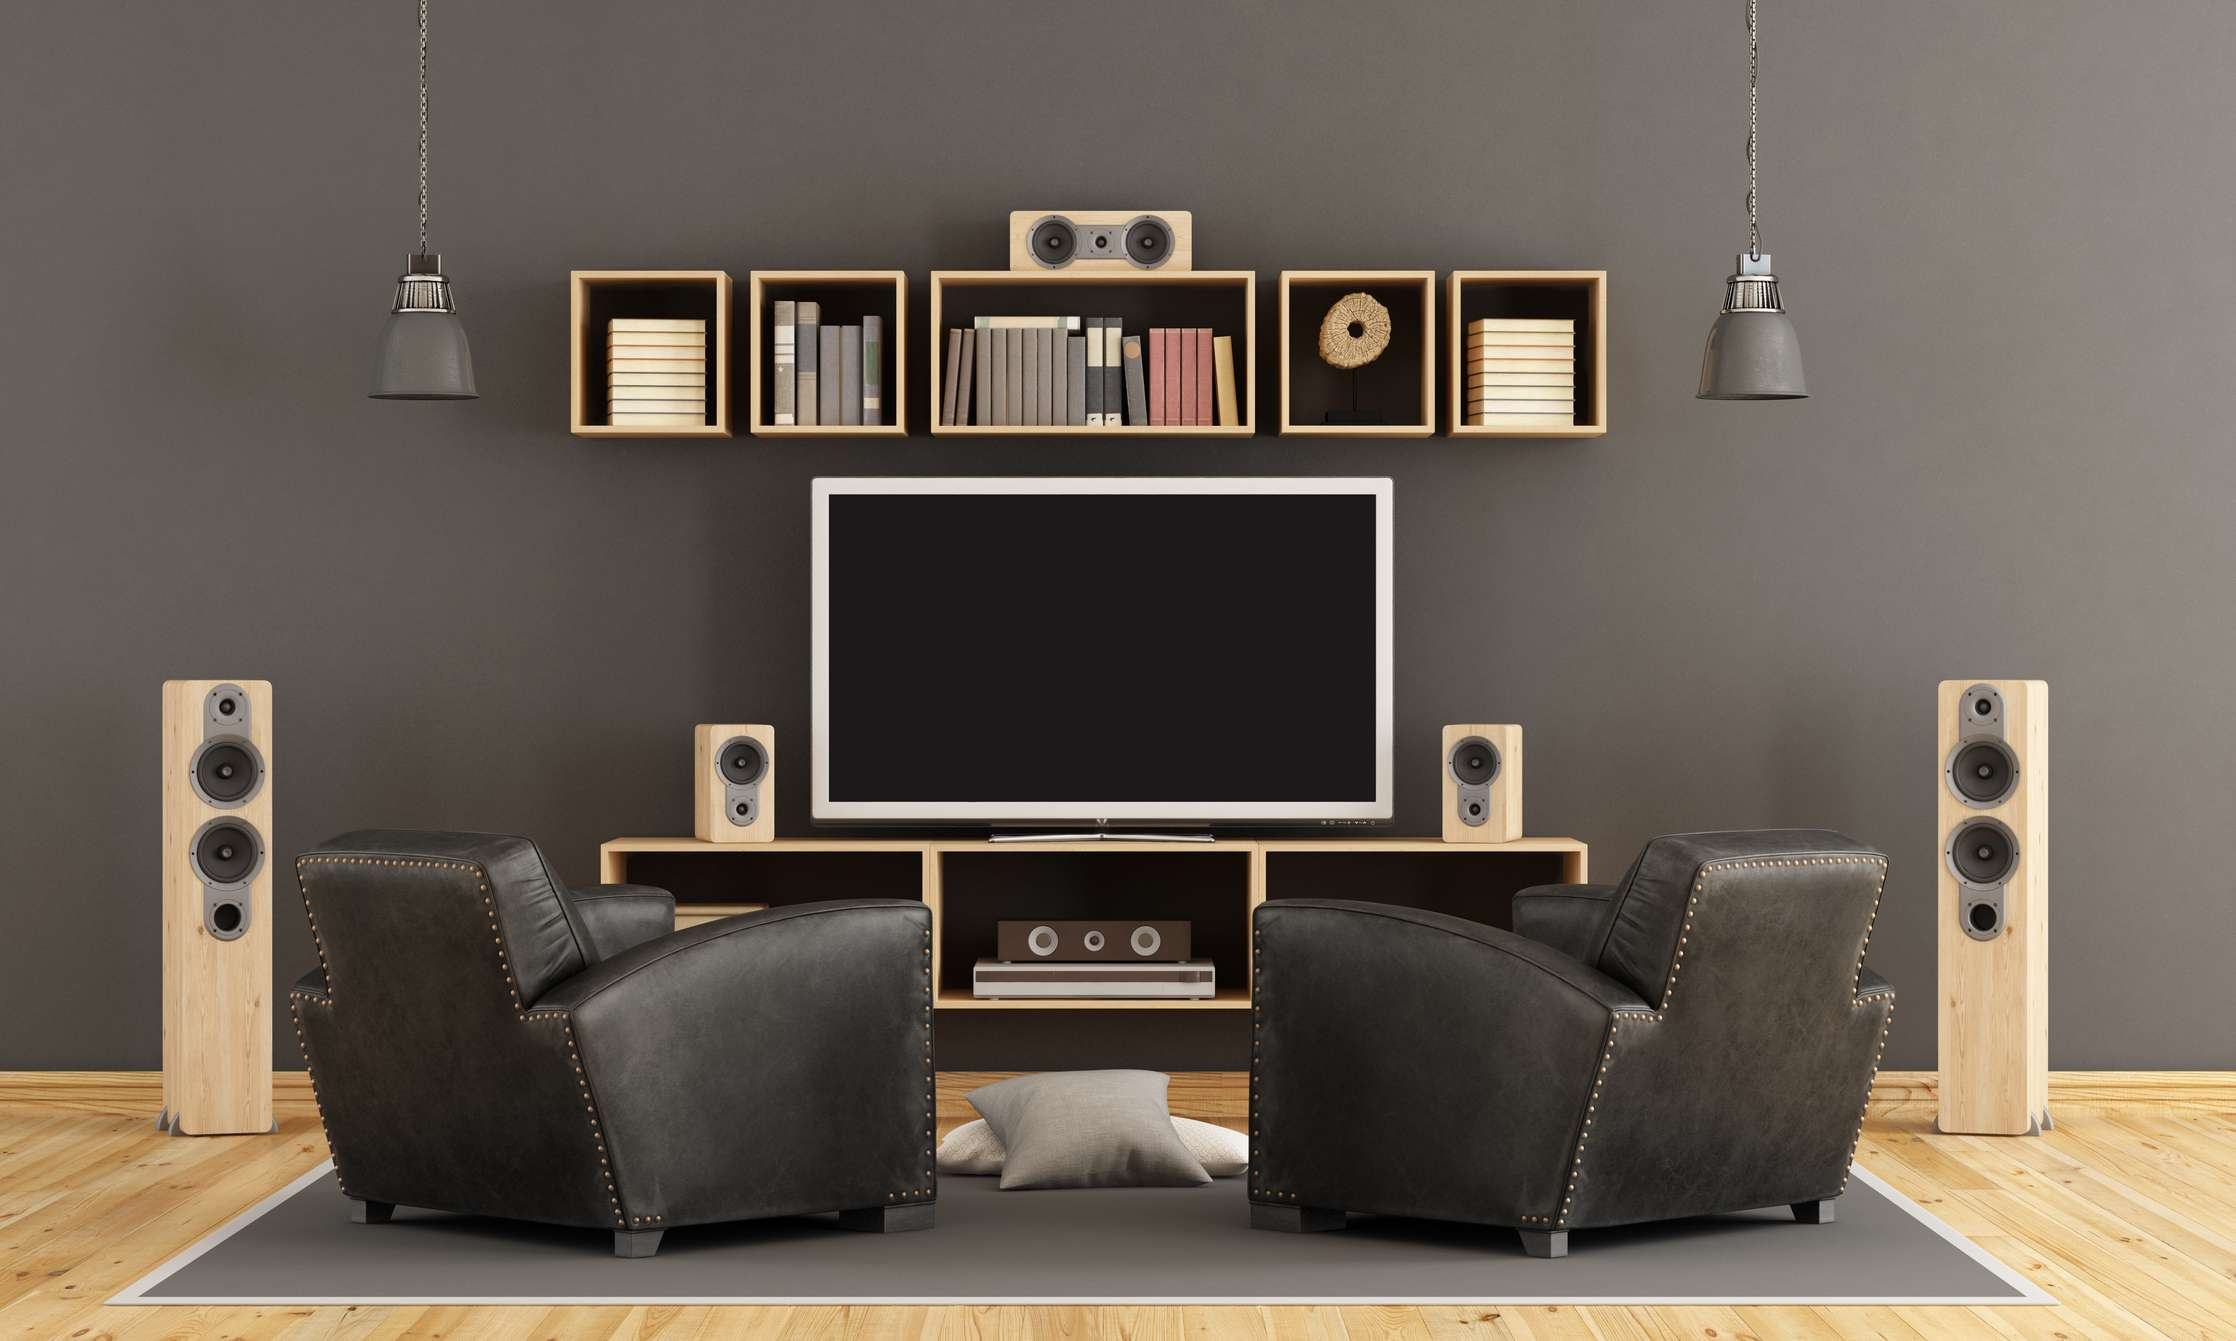 5 Easy Ways To Get The Best From Your Stereo System Surround Sound Installation Tips A Classic Style Home Cinema